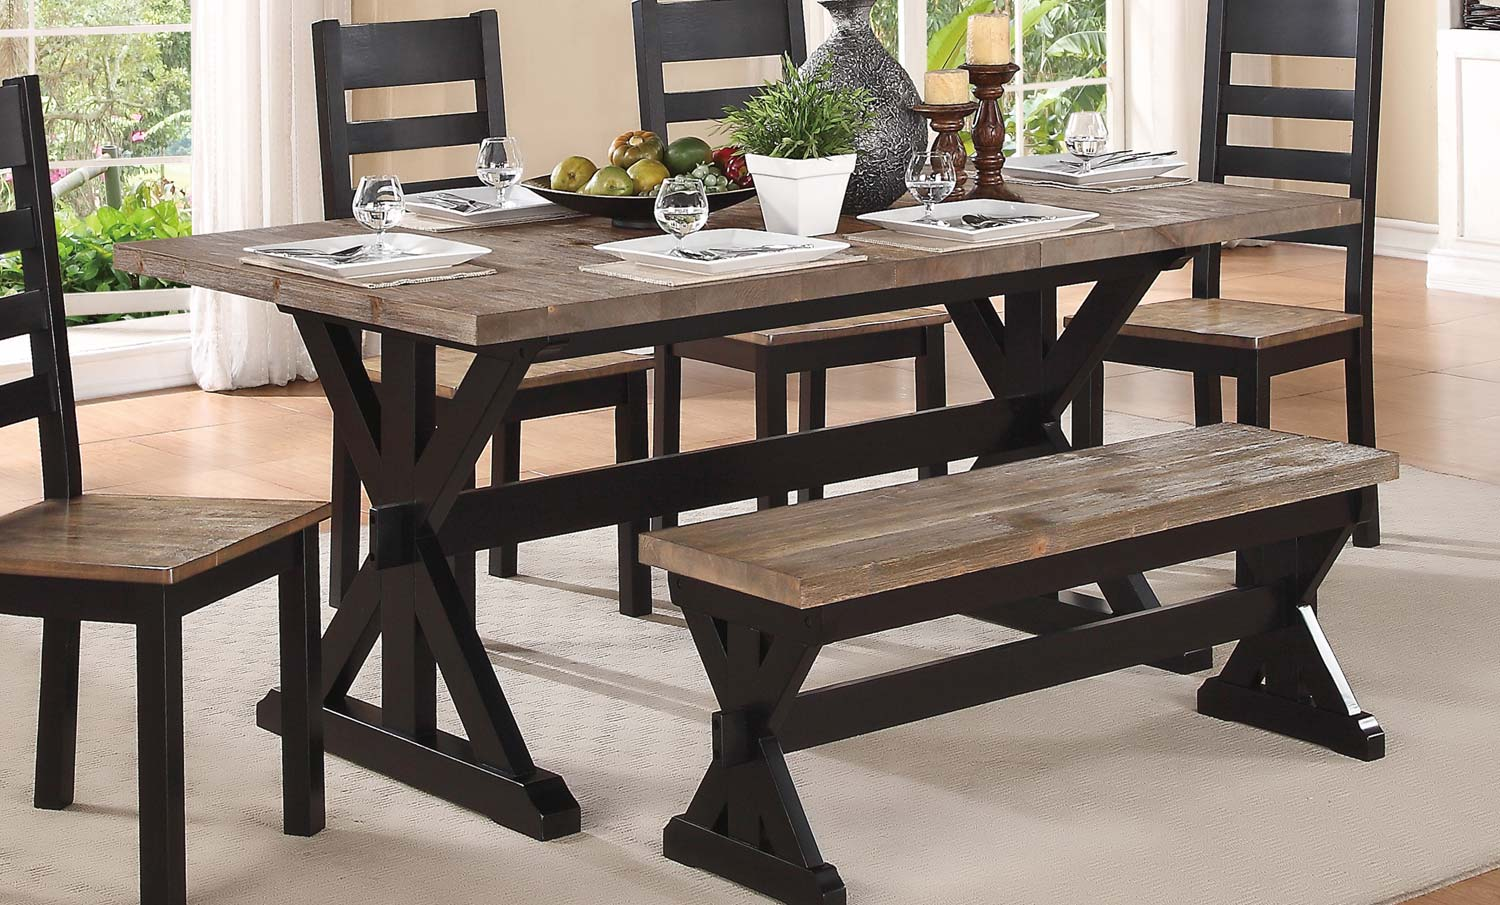 Homelegance North Port Trestle Dining Table Two Tone  : HE 5045 72 from www.homelegancefurnitureonline.com size 1500 x 905 jpeg 211kB